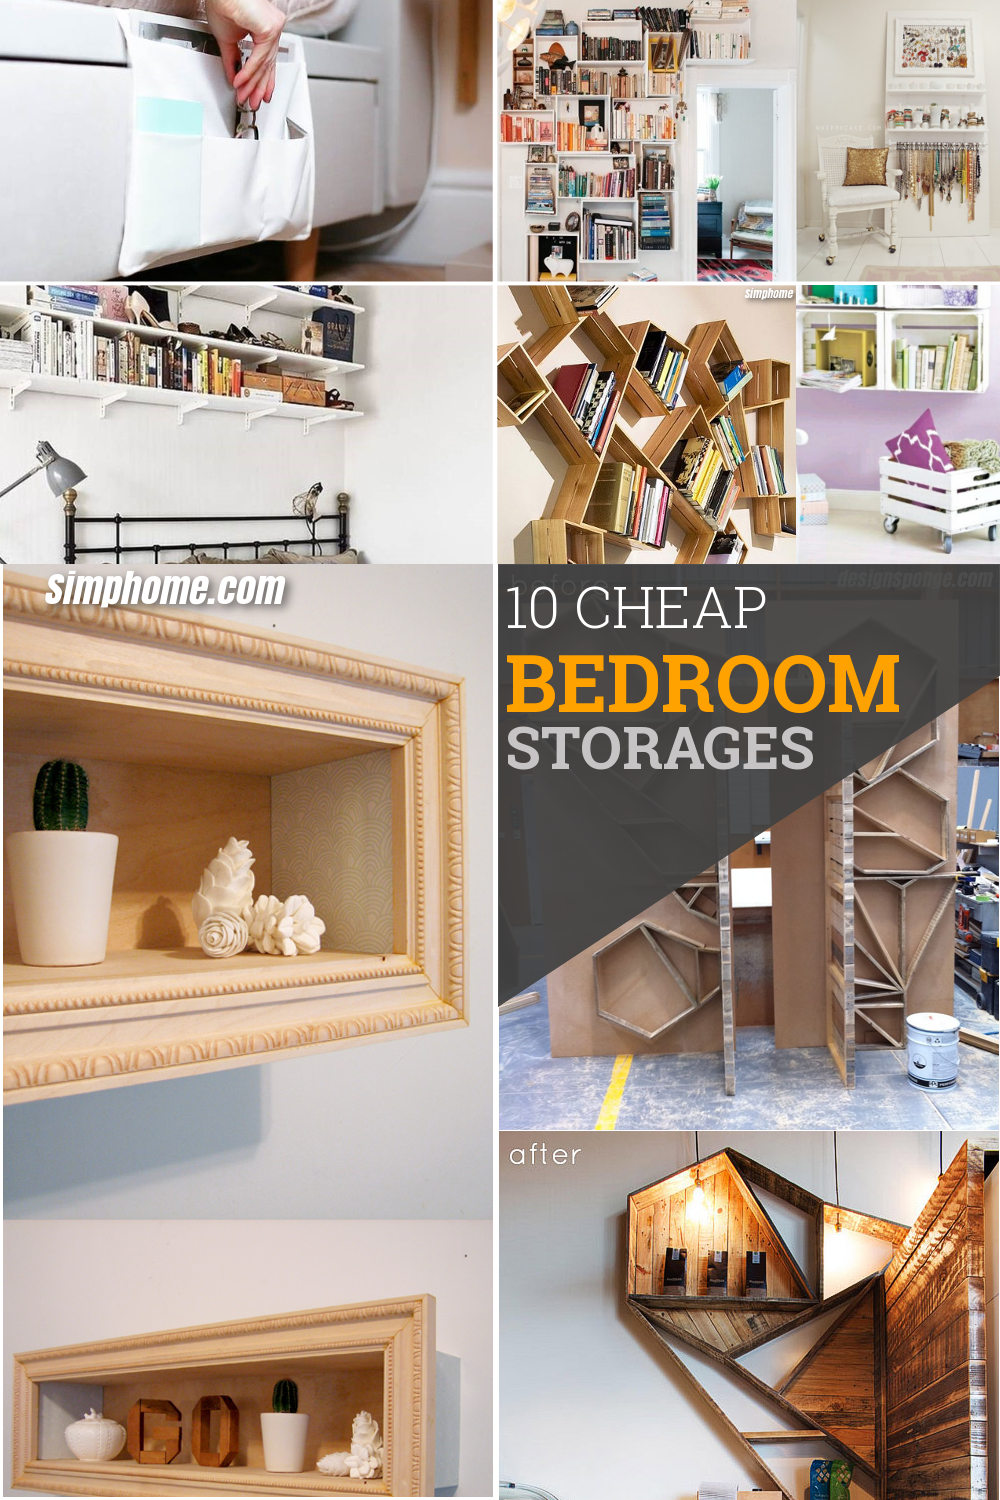 10 Cheap Bedroom Storage Ideas via Simphome pinterest image